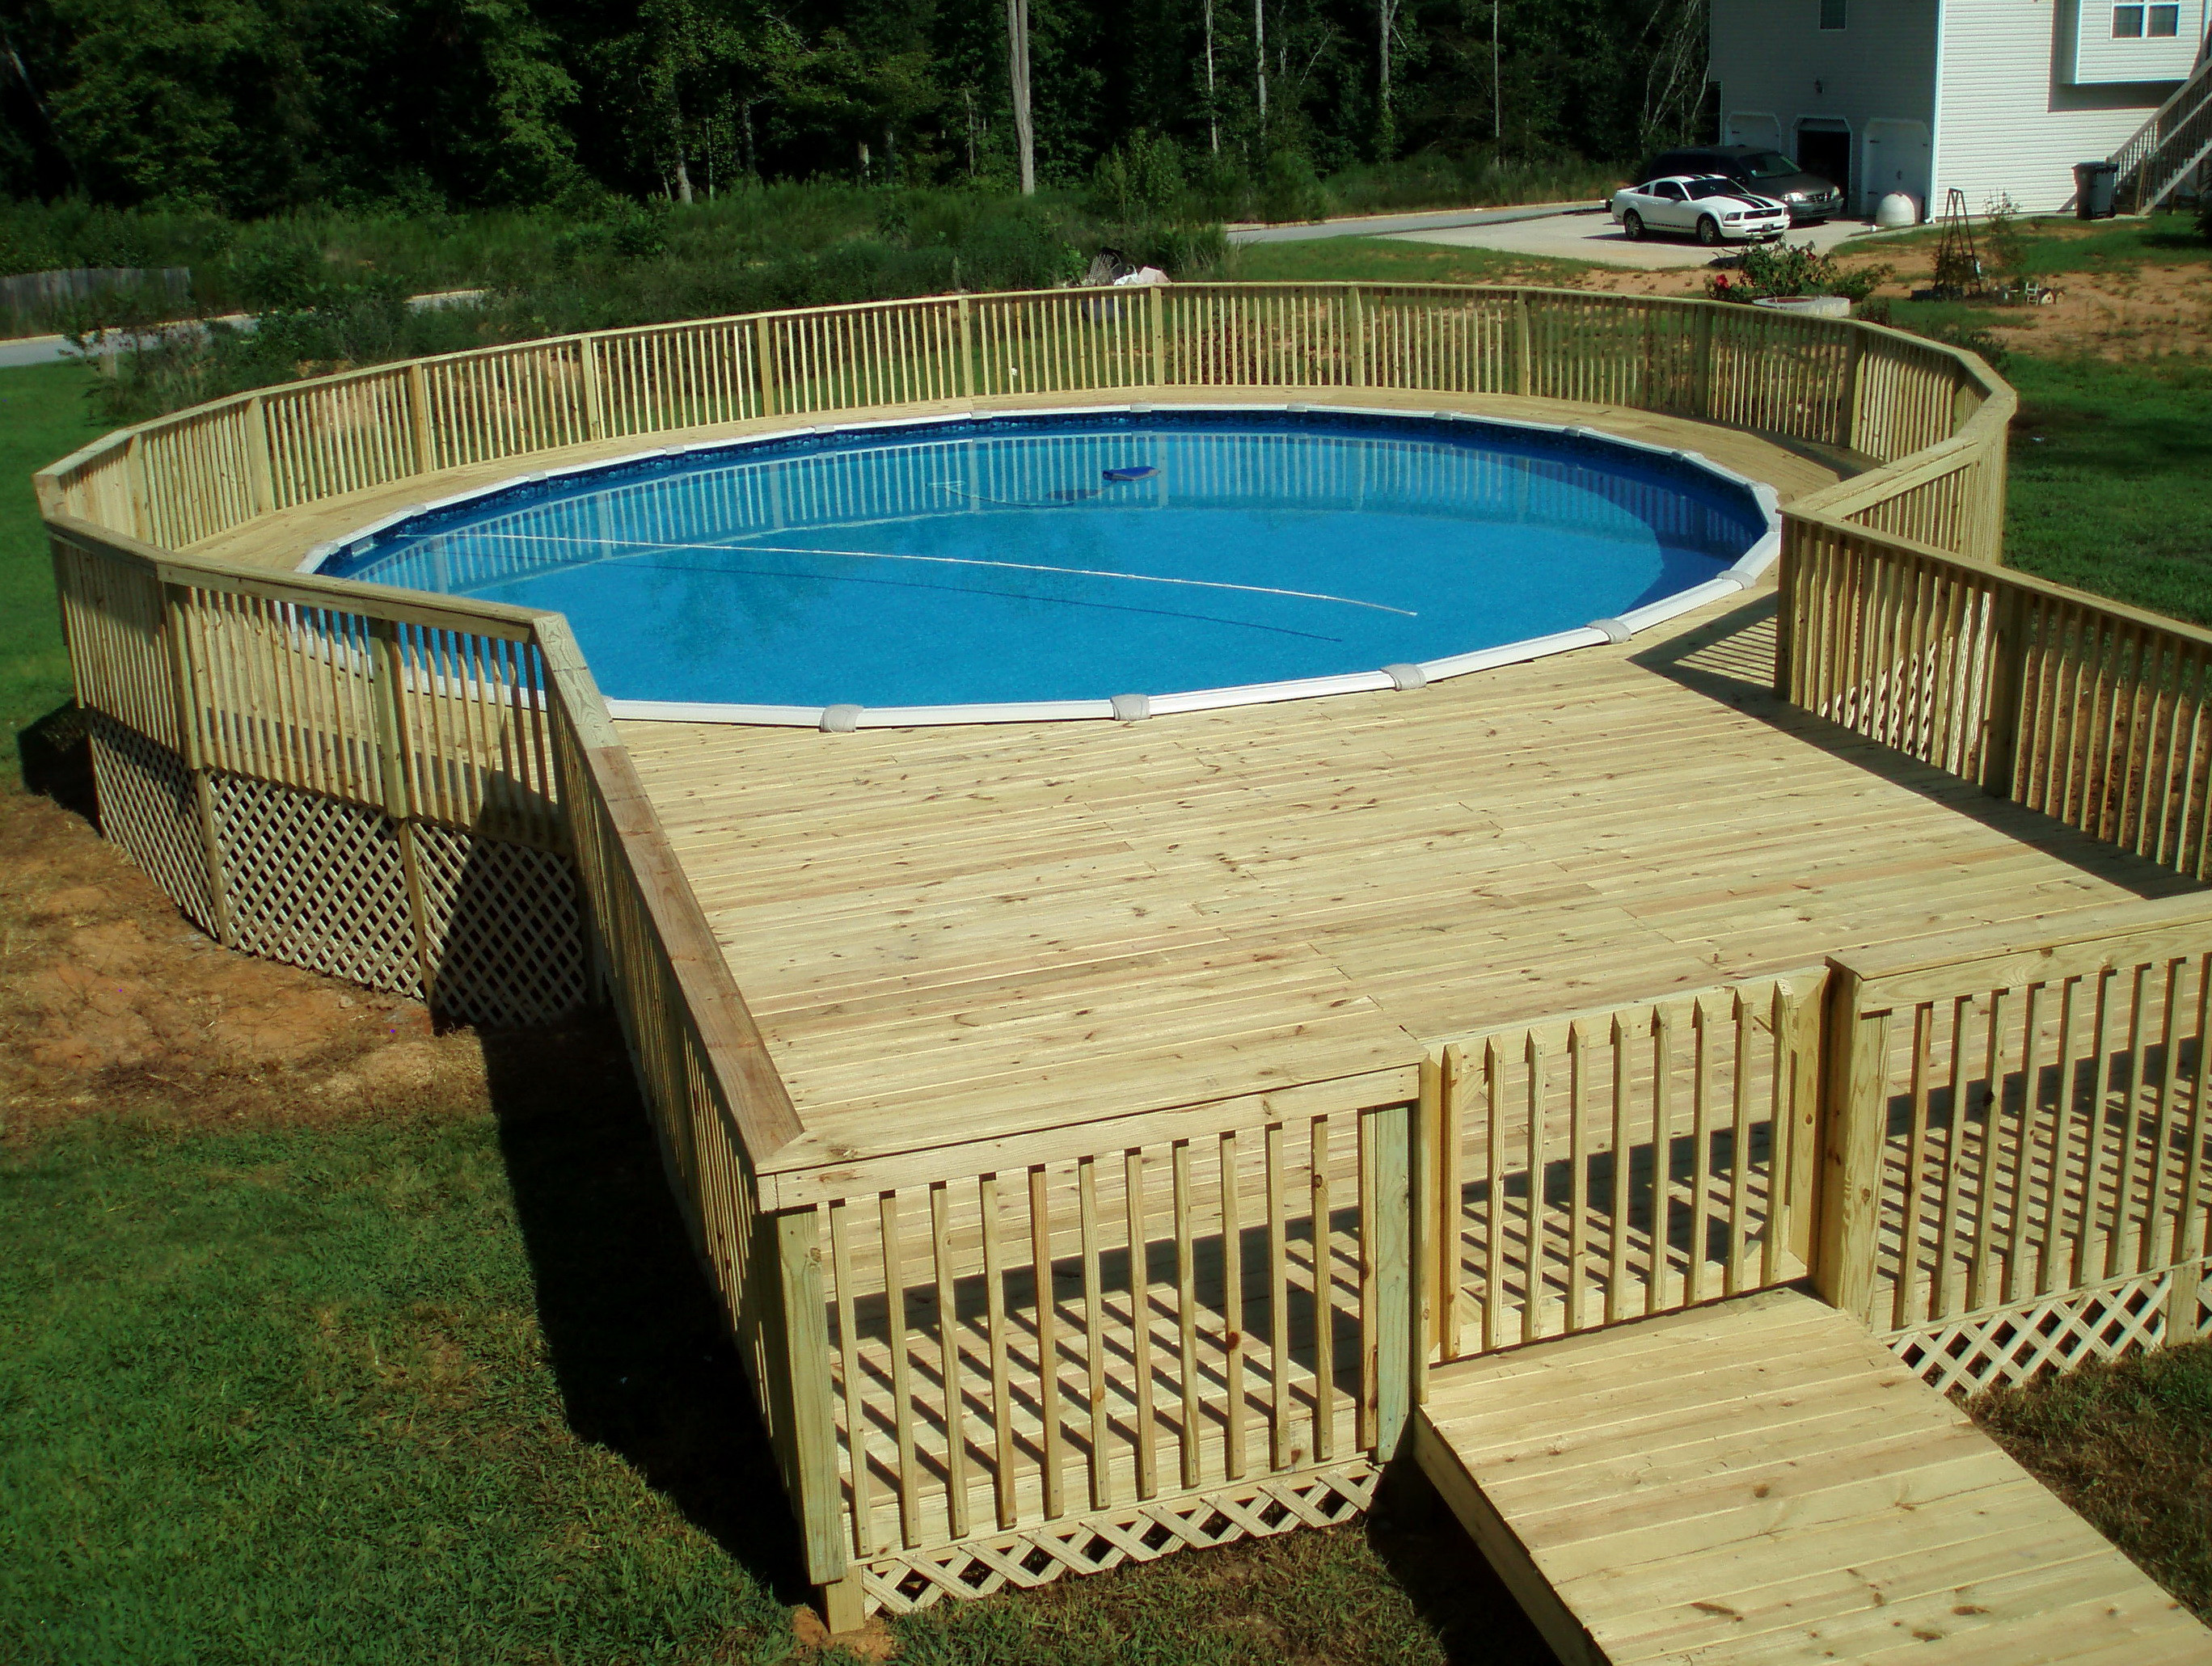 Best ideas about Pool Decks For Above Ground Pools . Save or Pin Pool Deck Ideas Image Swimming Clipgoo Now.